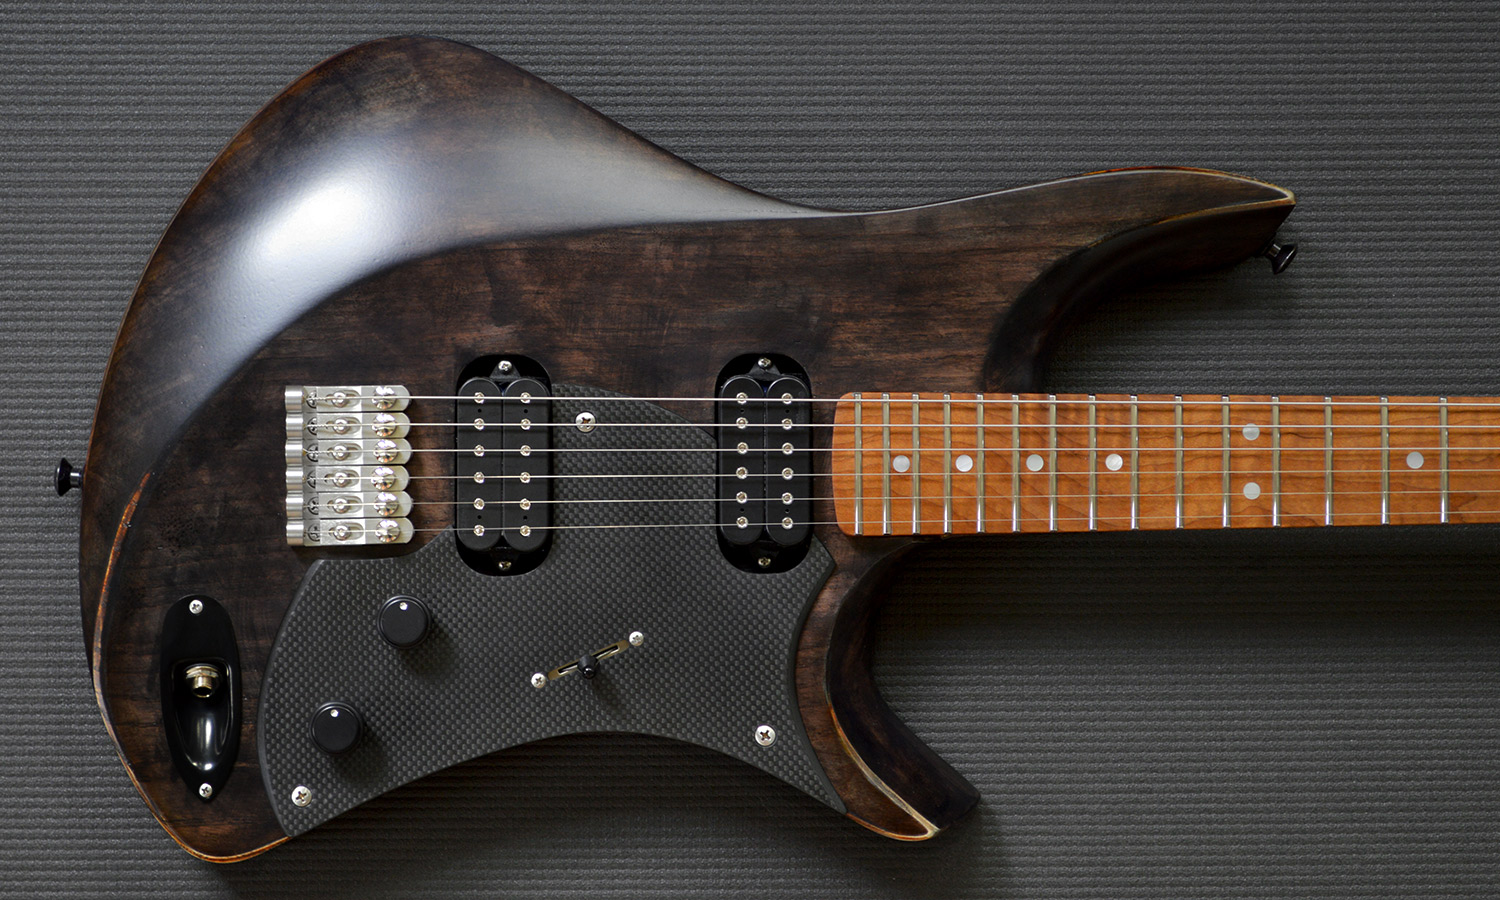 PHOTO: Goshawk™ Swamp Ash and roasted Flame Maple with mother of pearl inlays and bone nut. Iceland-inspired finish.